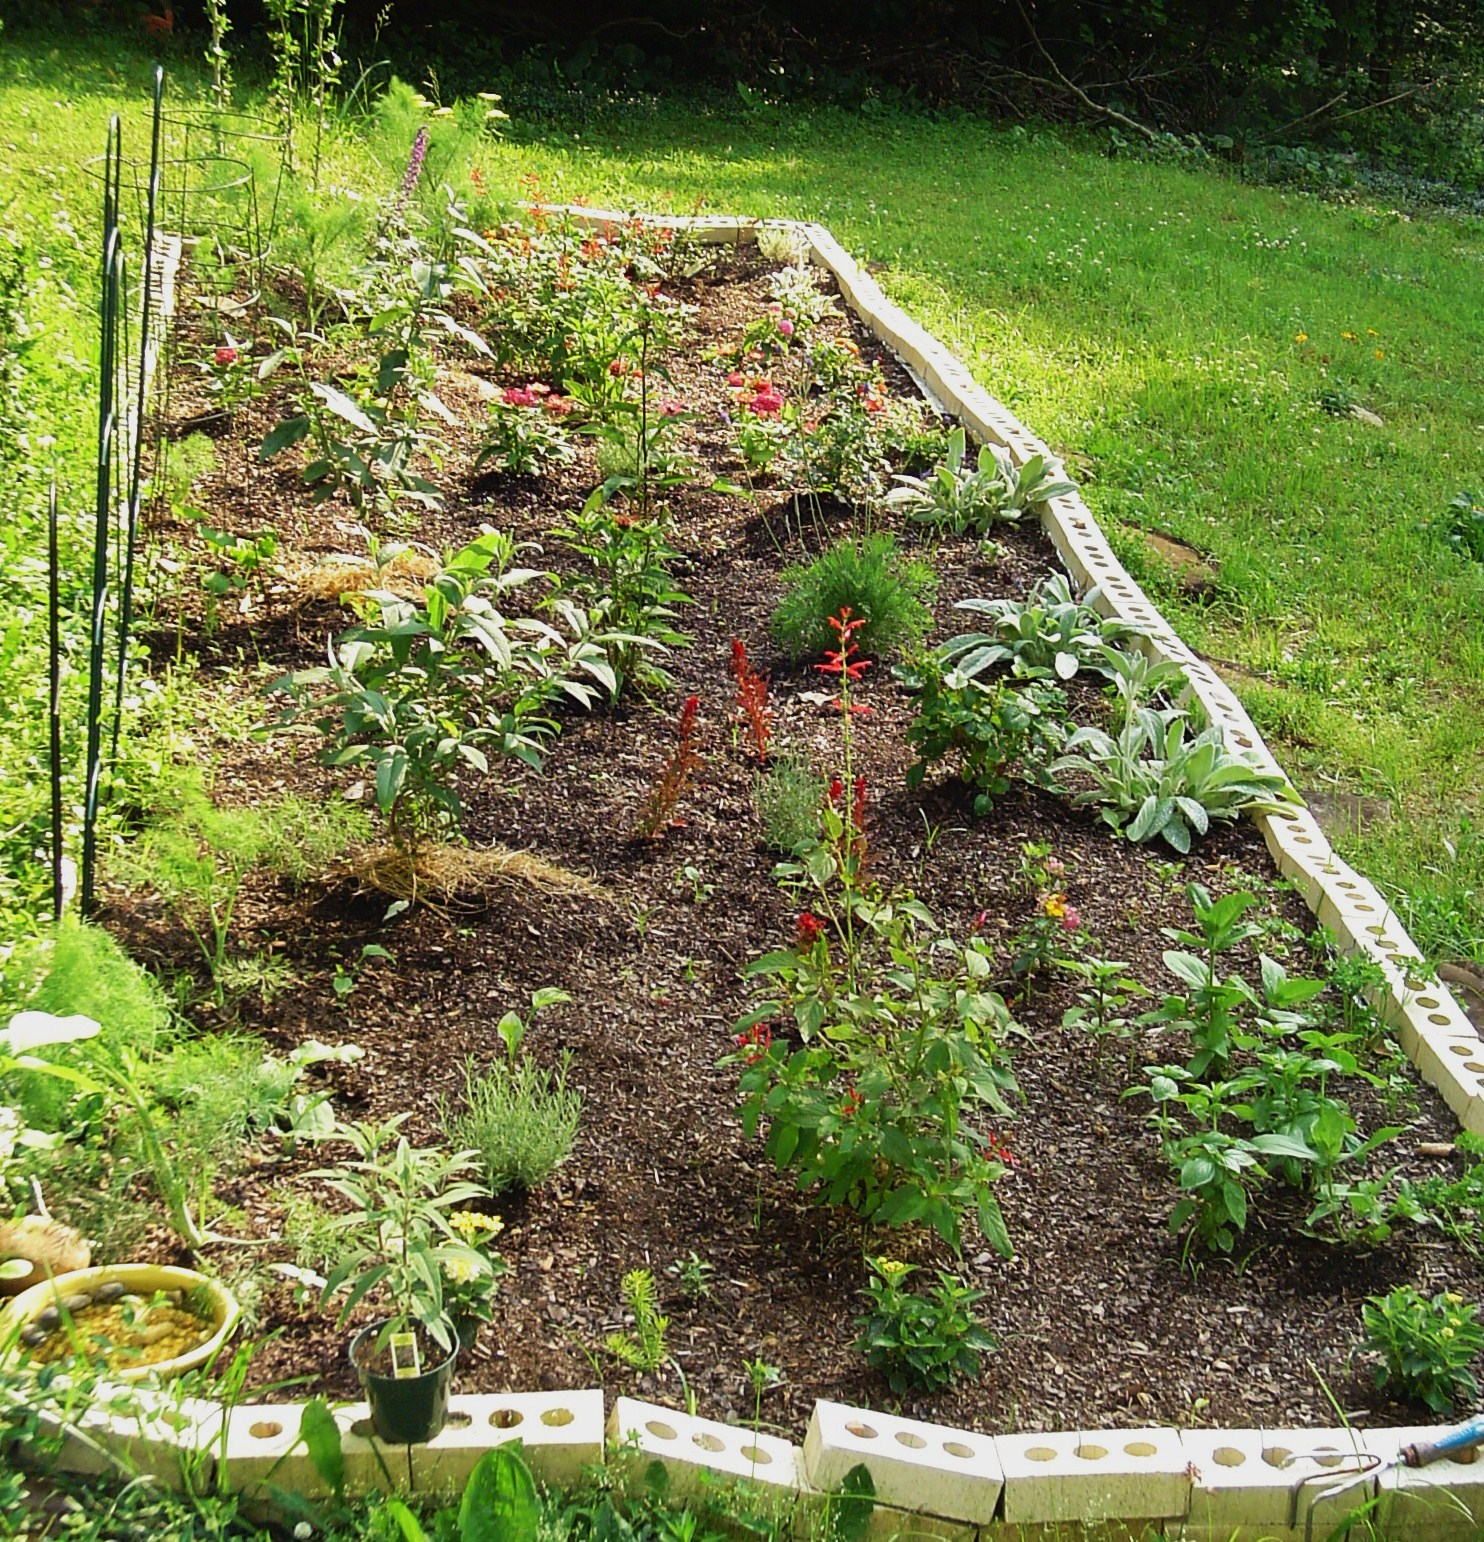 Our first raised bed garden in our new garden, mixing herbs, shrubs, and perennials.